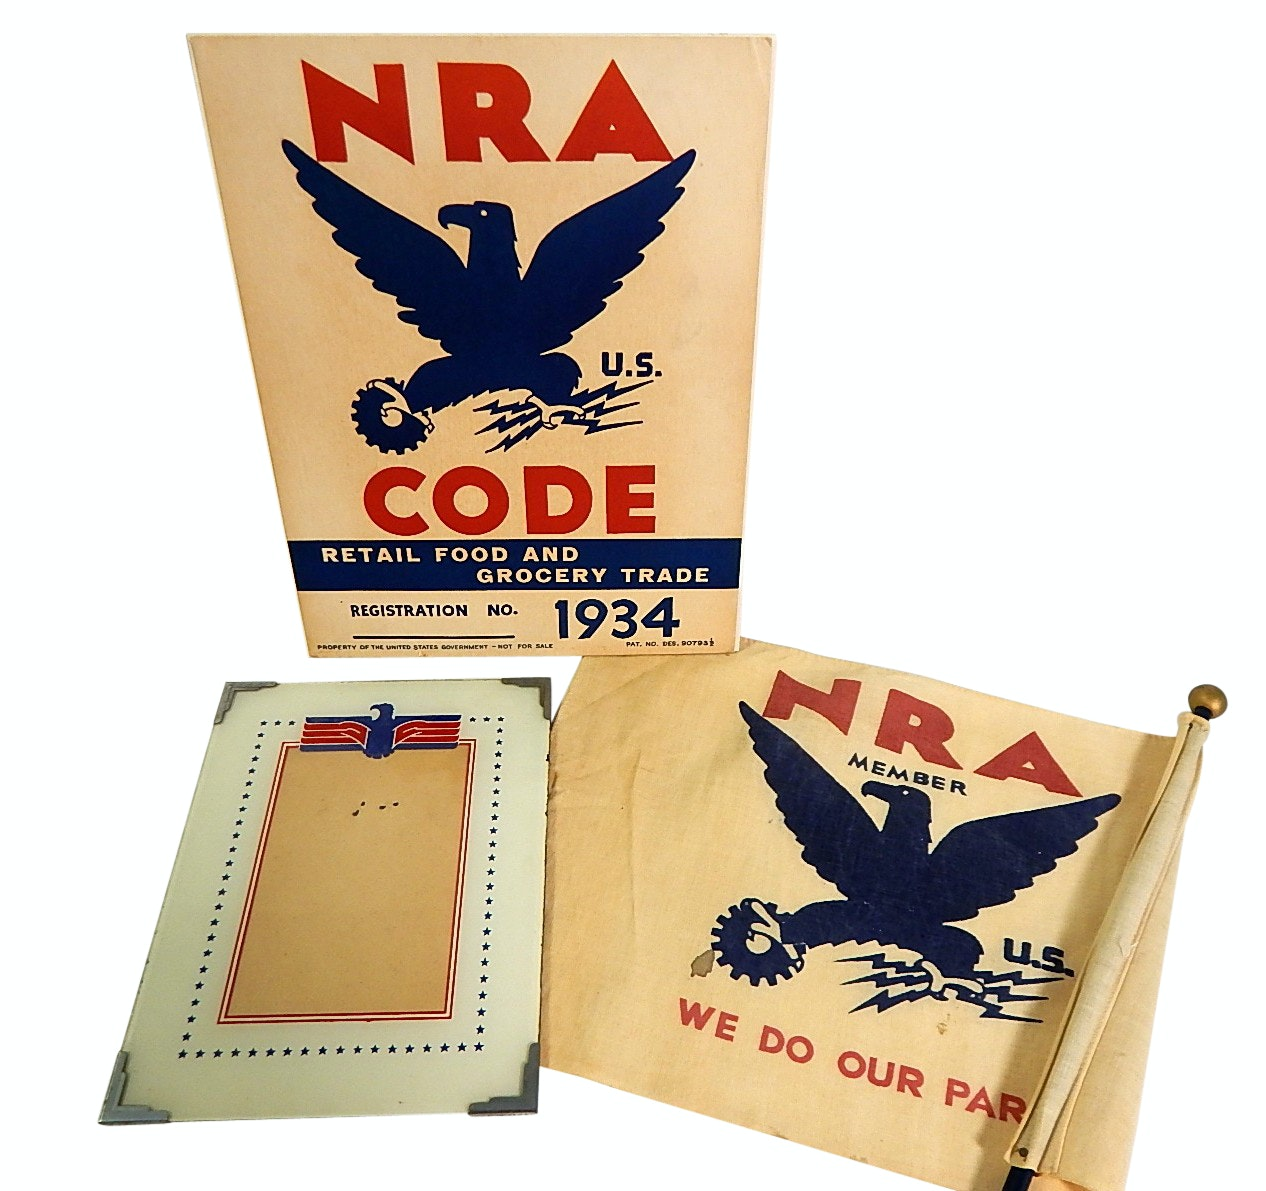 1930s Era National Recovery Administration NRA Signage, Frame, and Flag